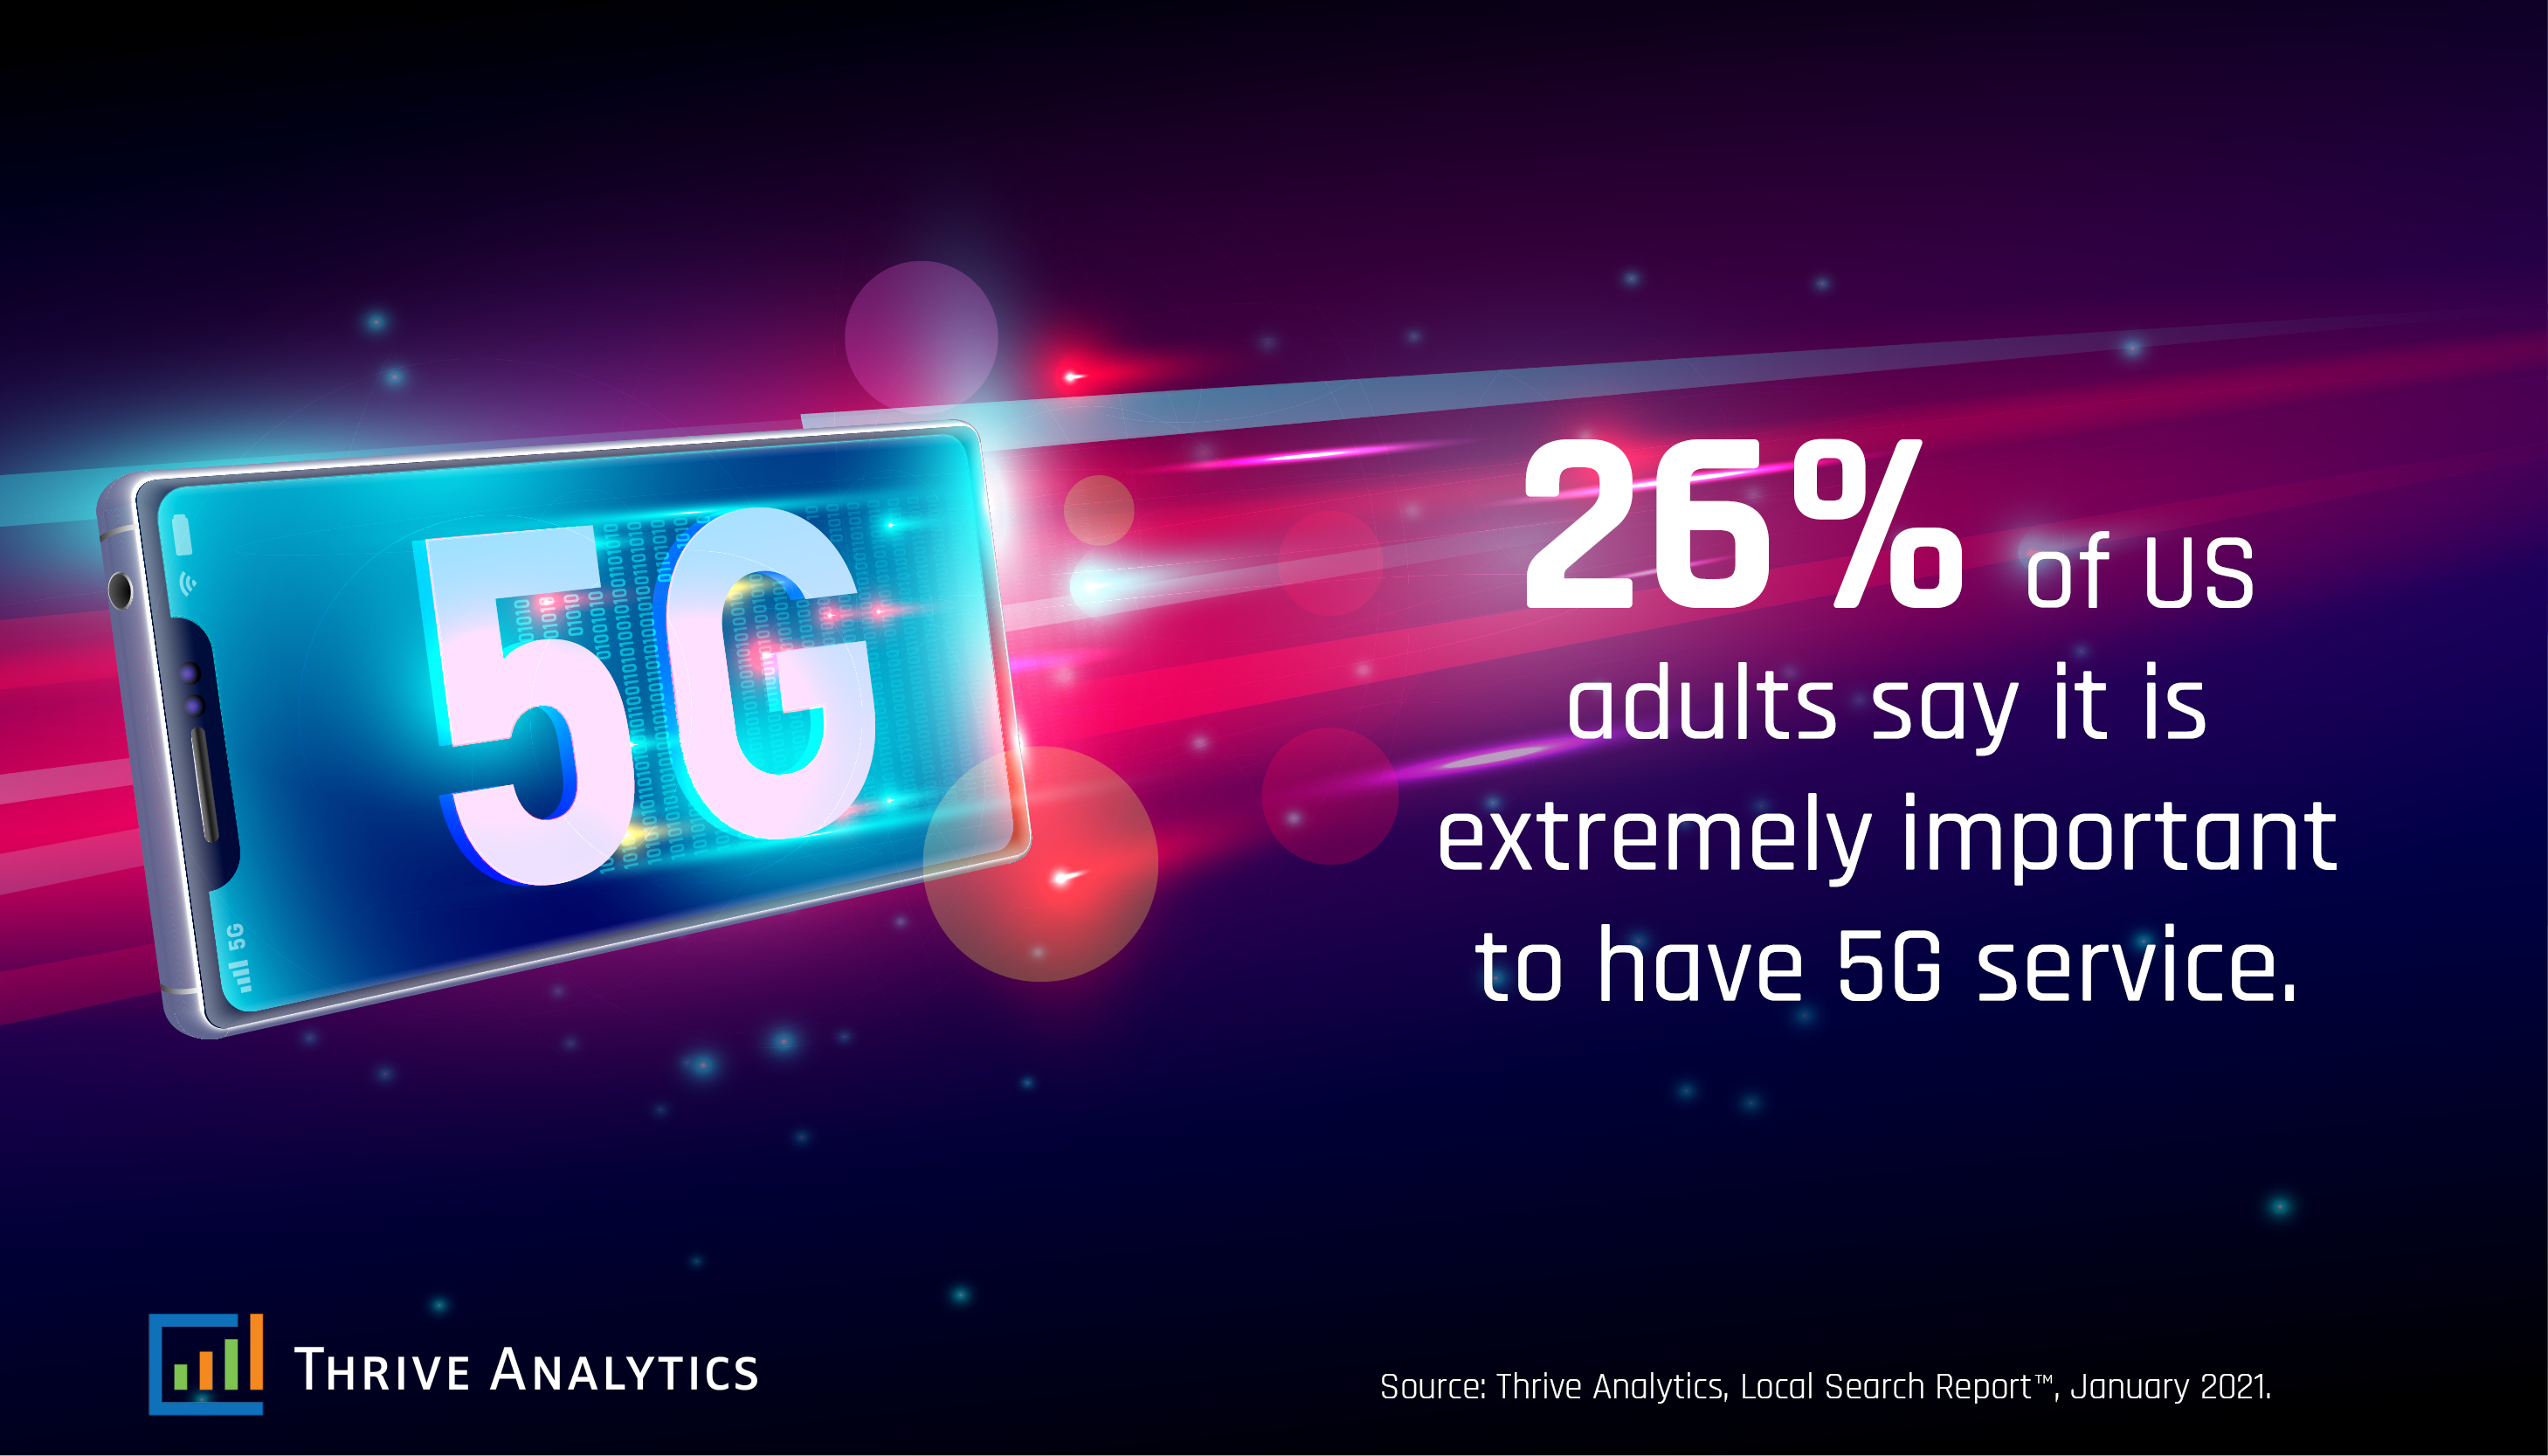 Importance of 5G Access